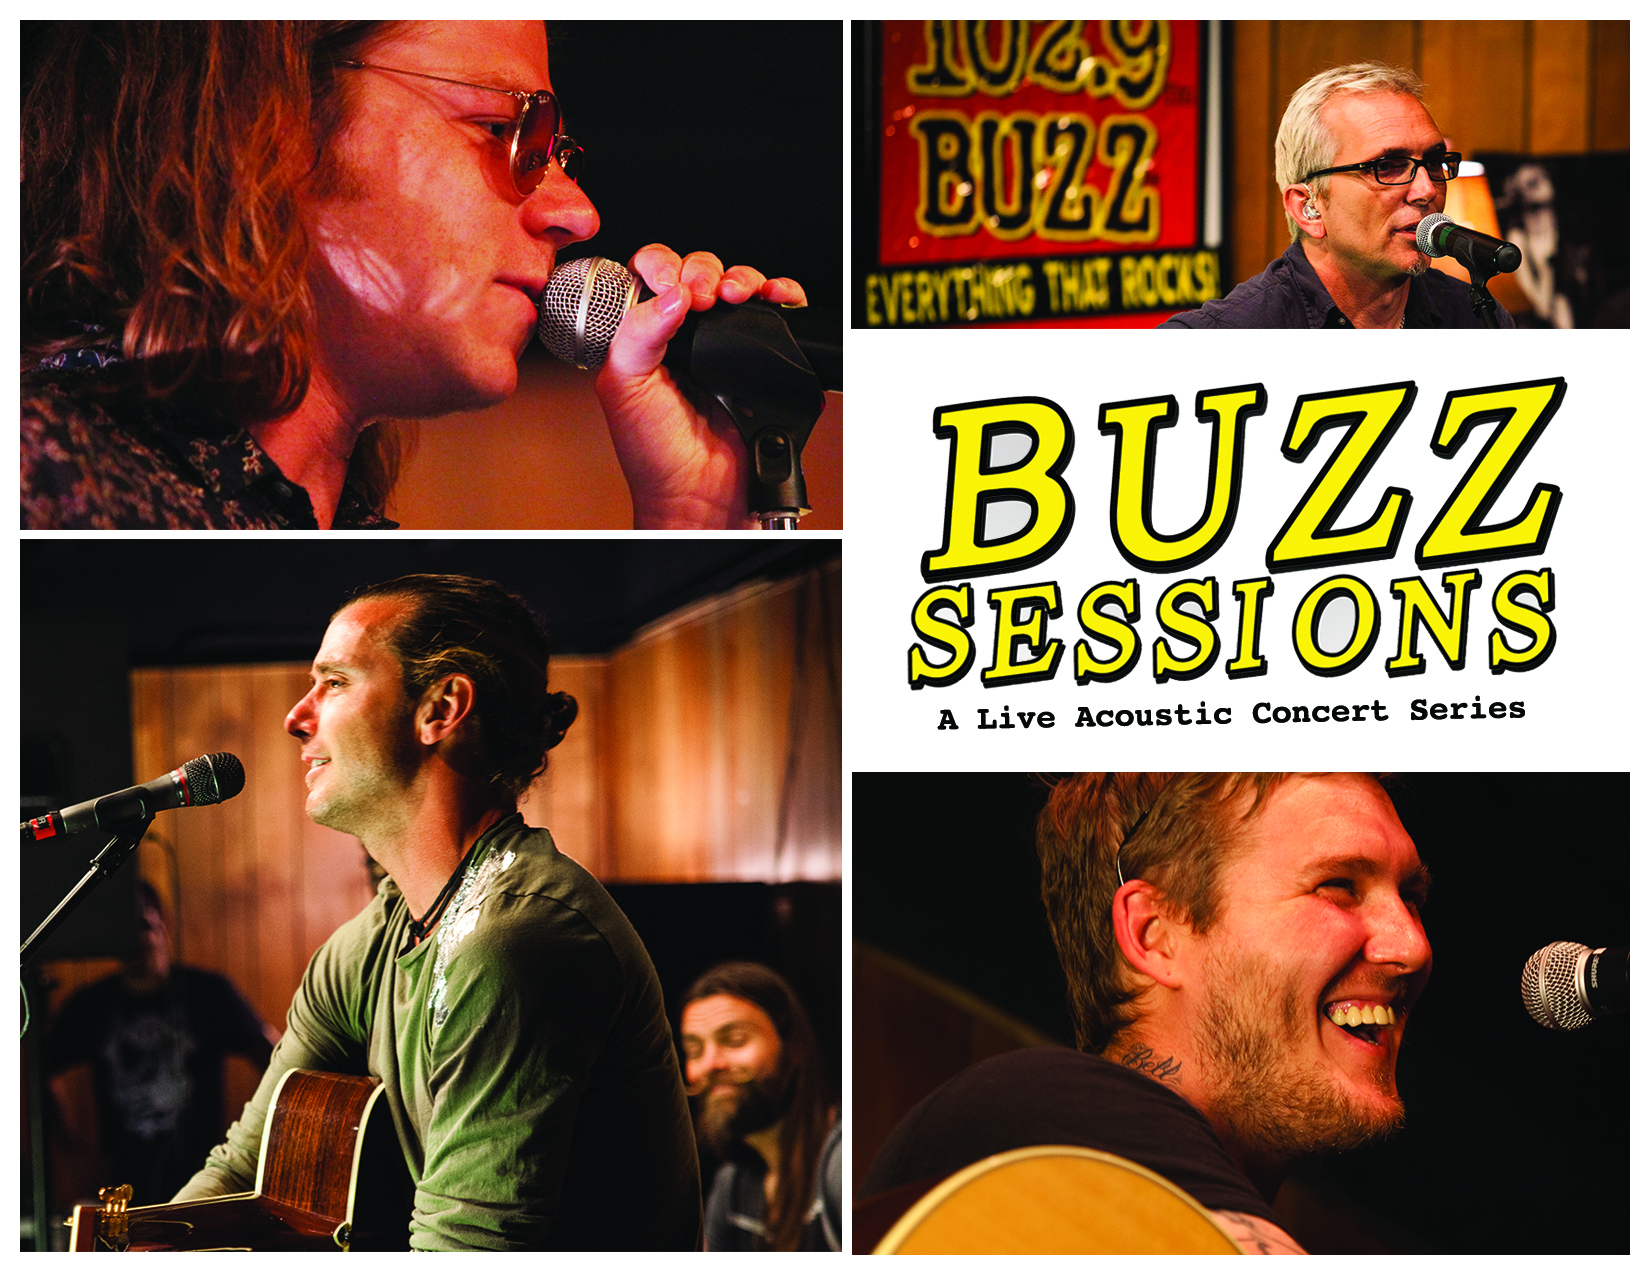 Buzz Session photos